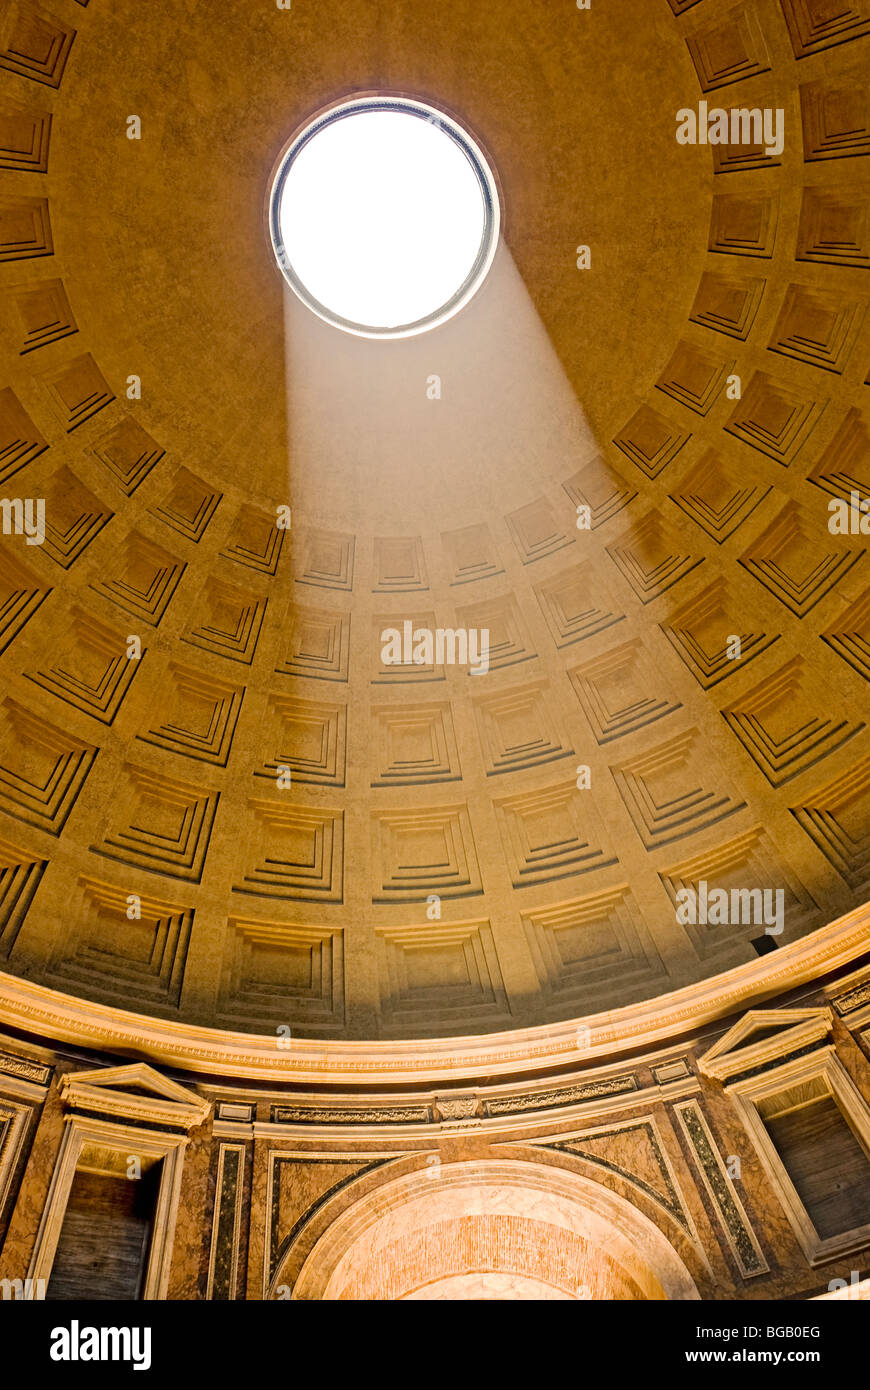 Rome, Italy. Interior of the Pantheon at the Piazza della Rotonda the Oculus and the coffered ceiling. Stock Foto